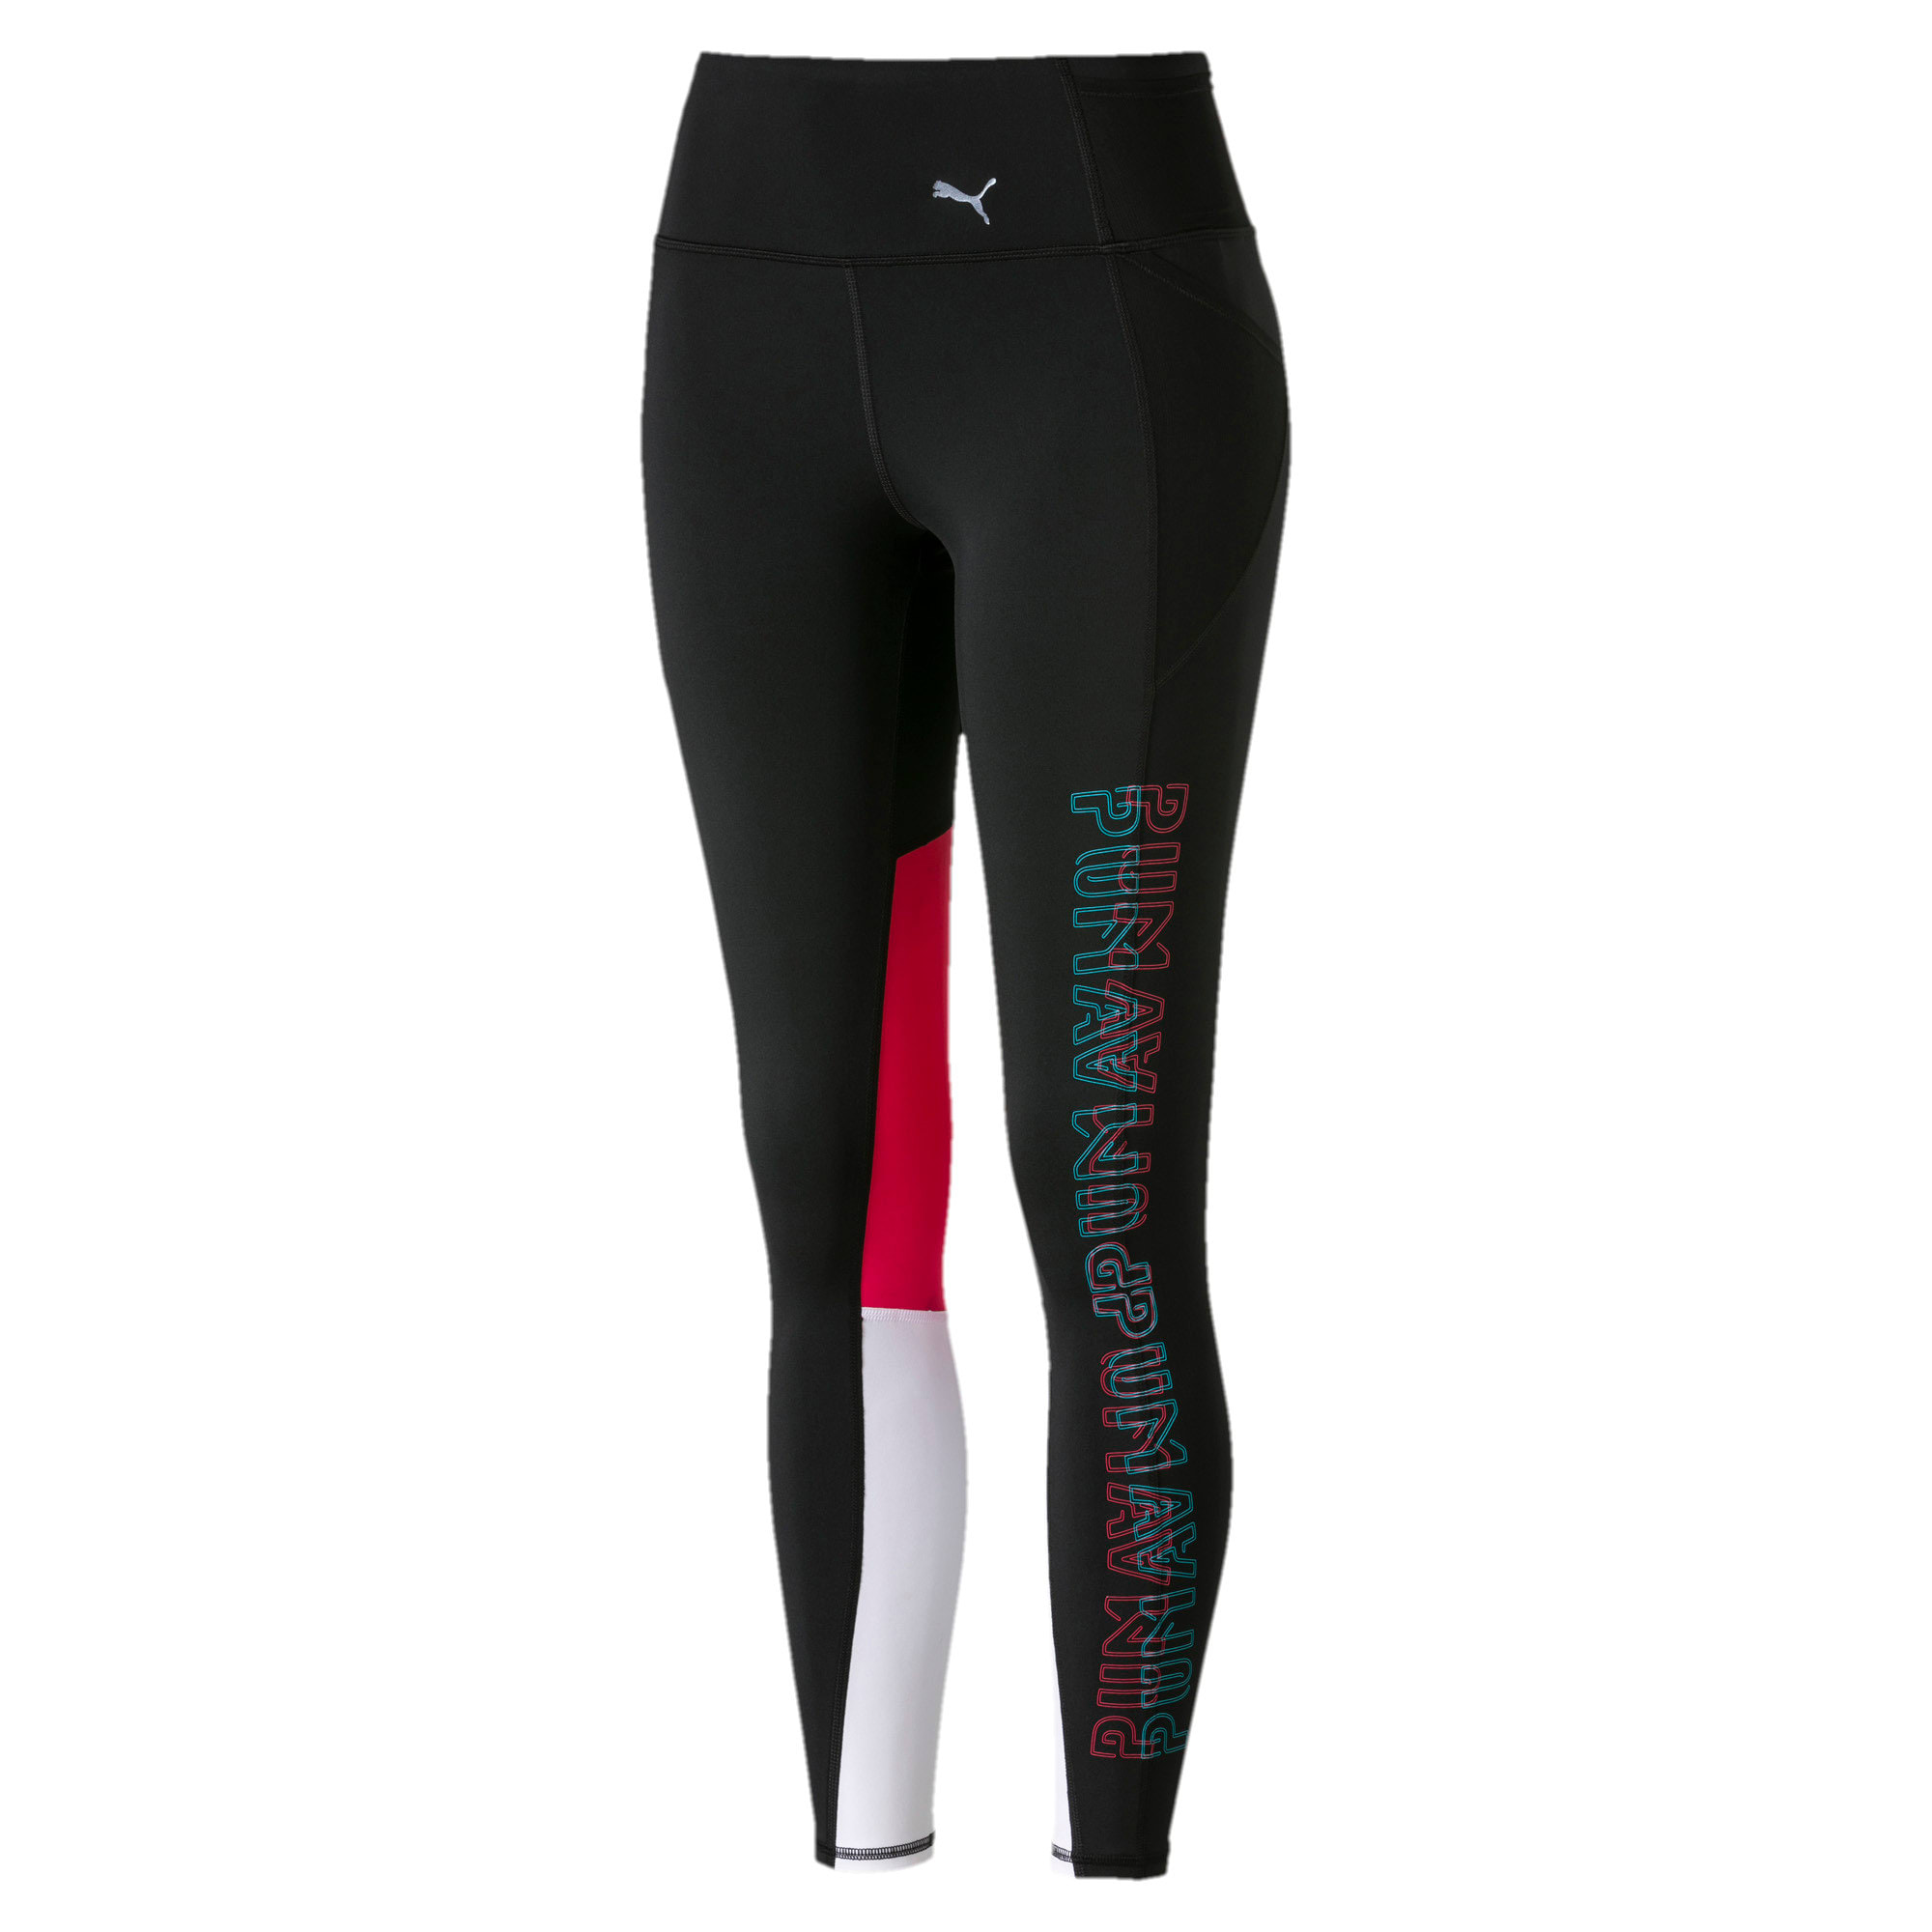 Thumbnail 1 of Feel It Women's 7/8 Leggings, Puma Black, medium